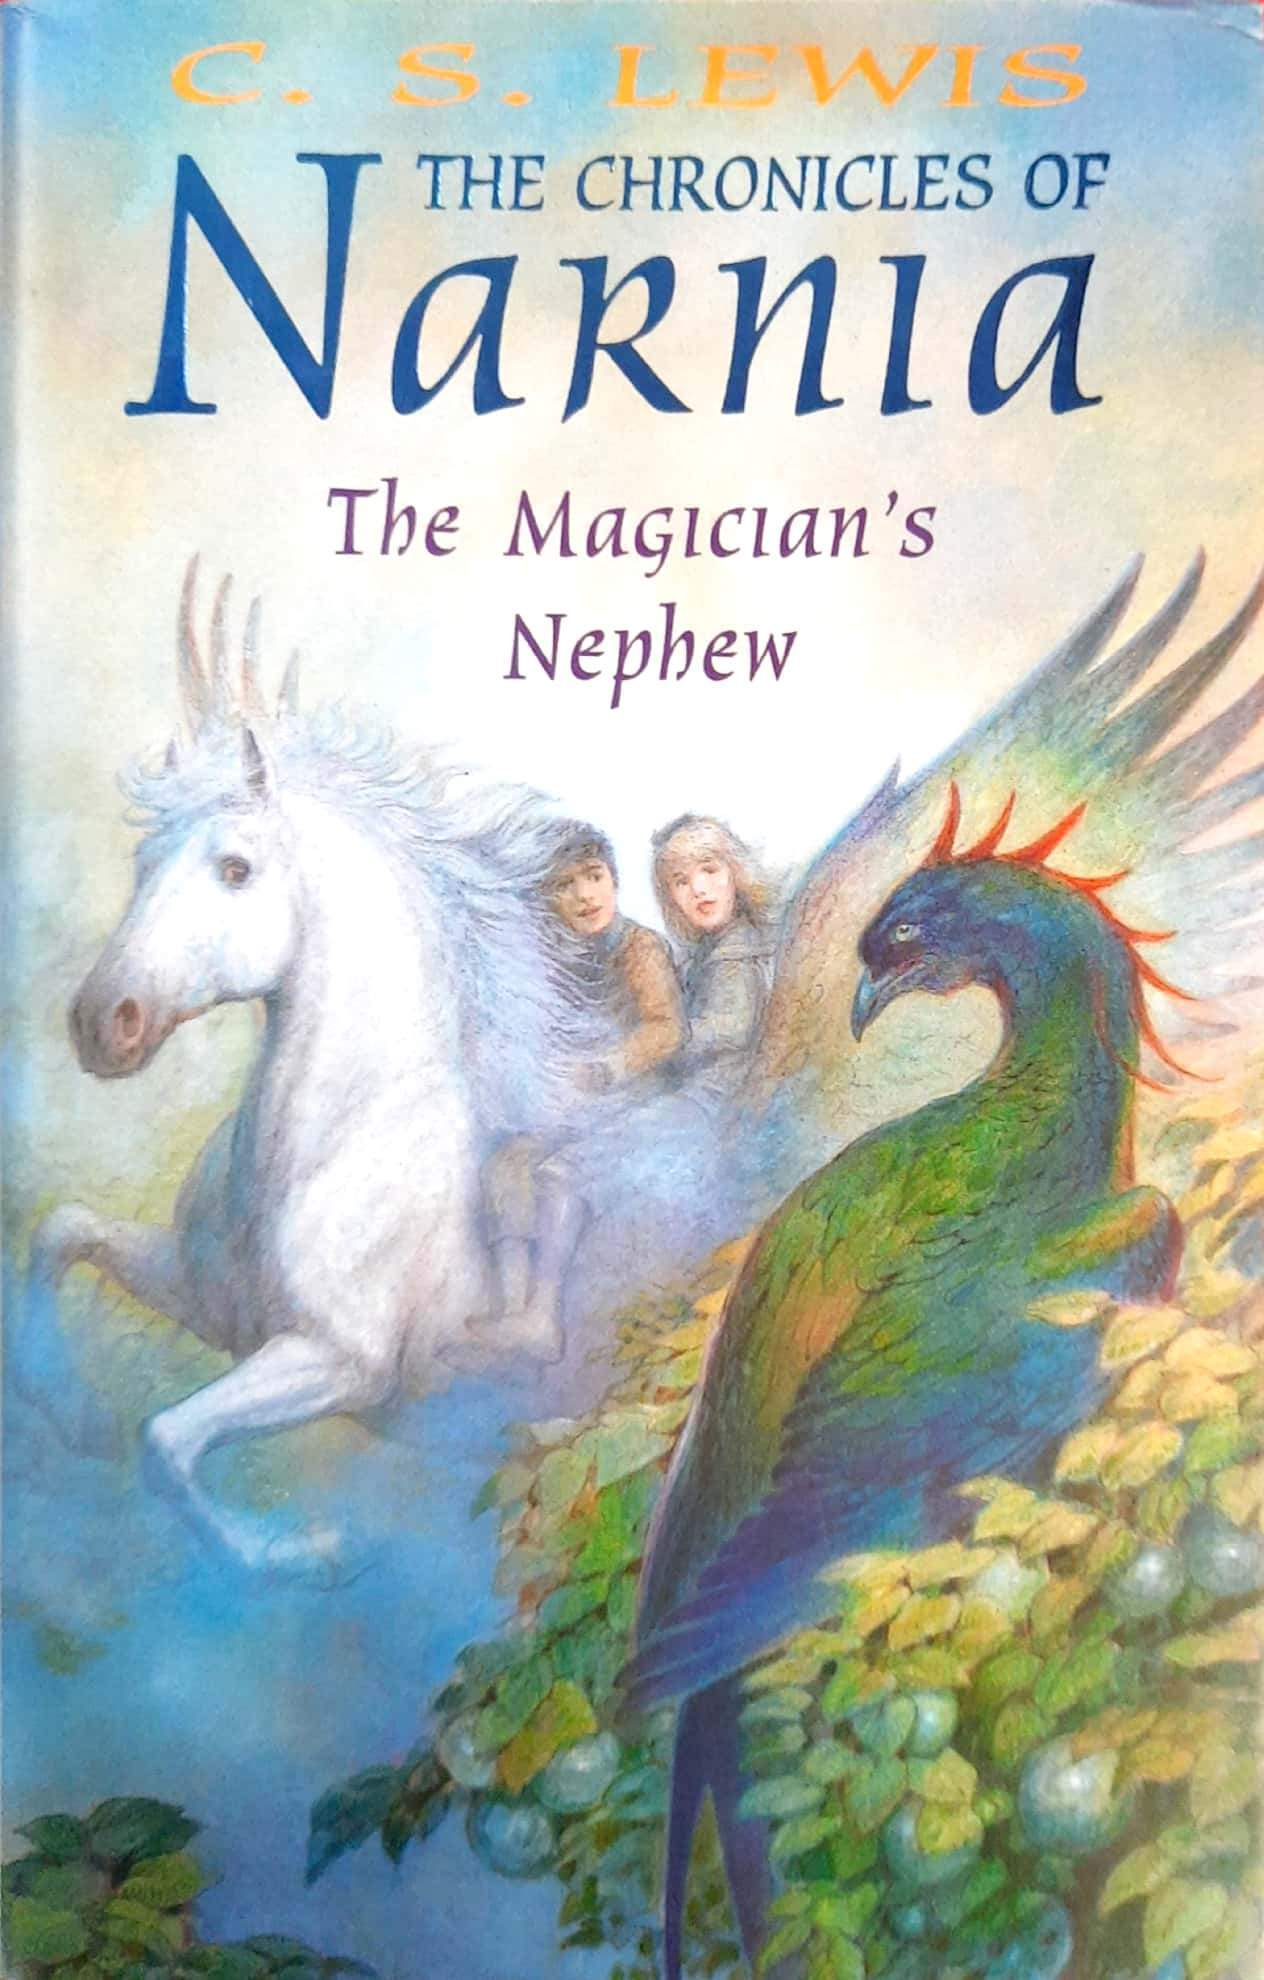 The Magician's Nephew (The Chronicles of Narnia #1)(Hardcover Edition)